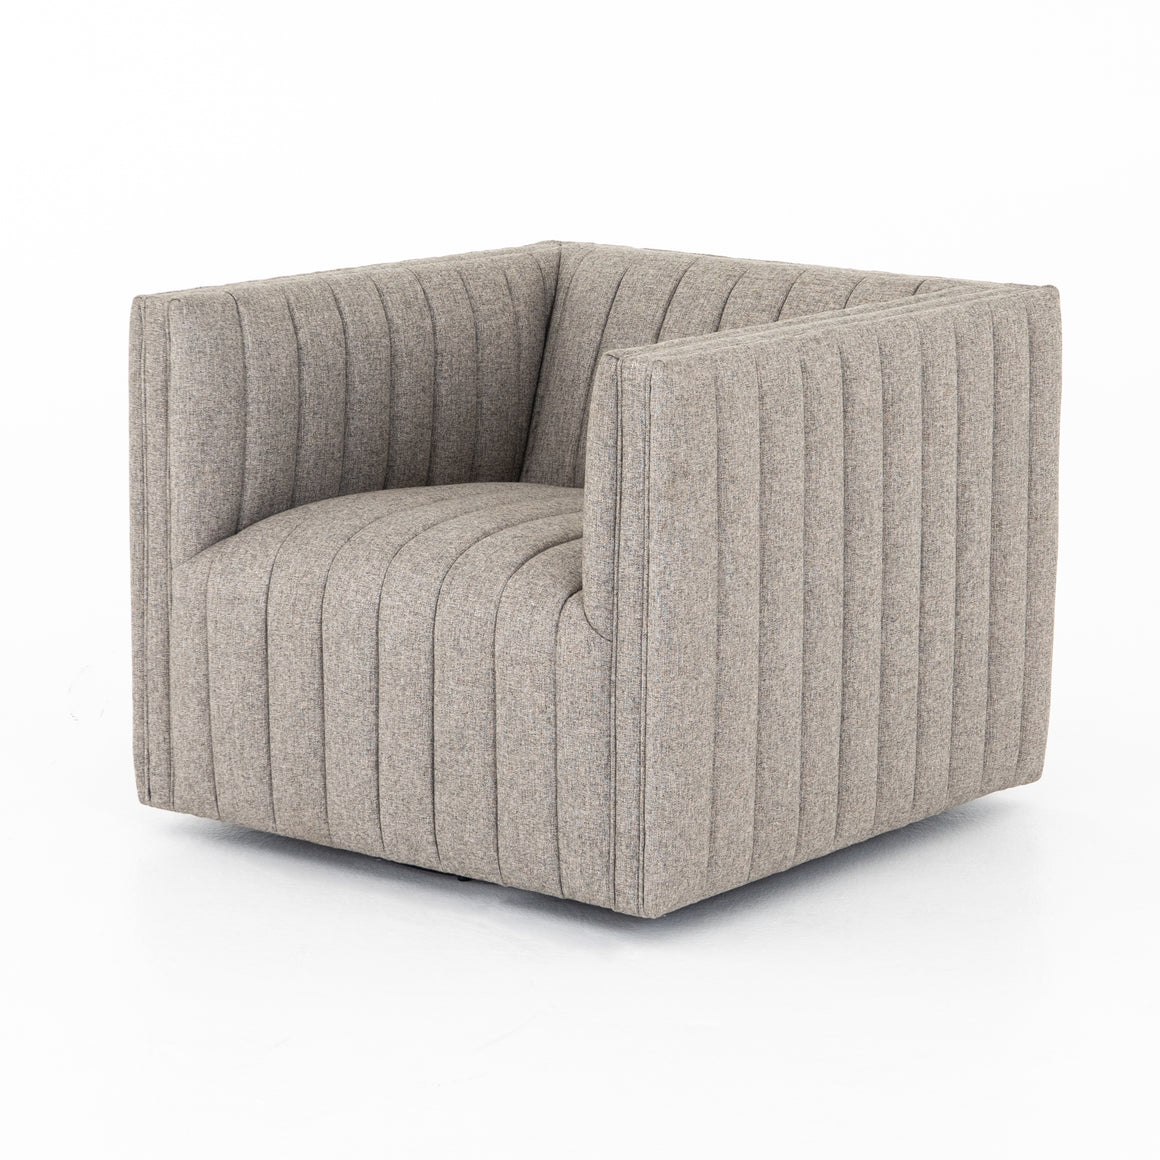 Augustine Swivel Chair - Orly Natural